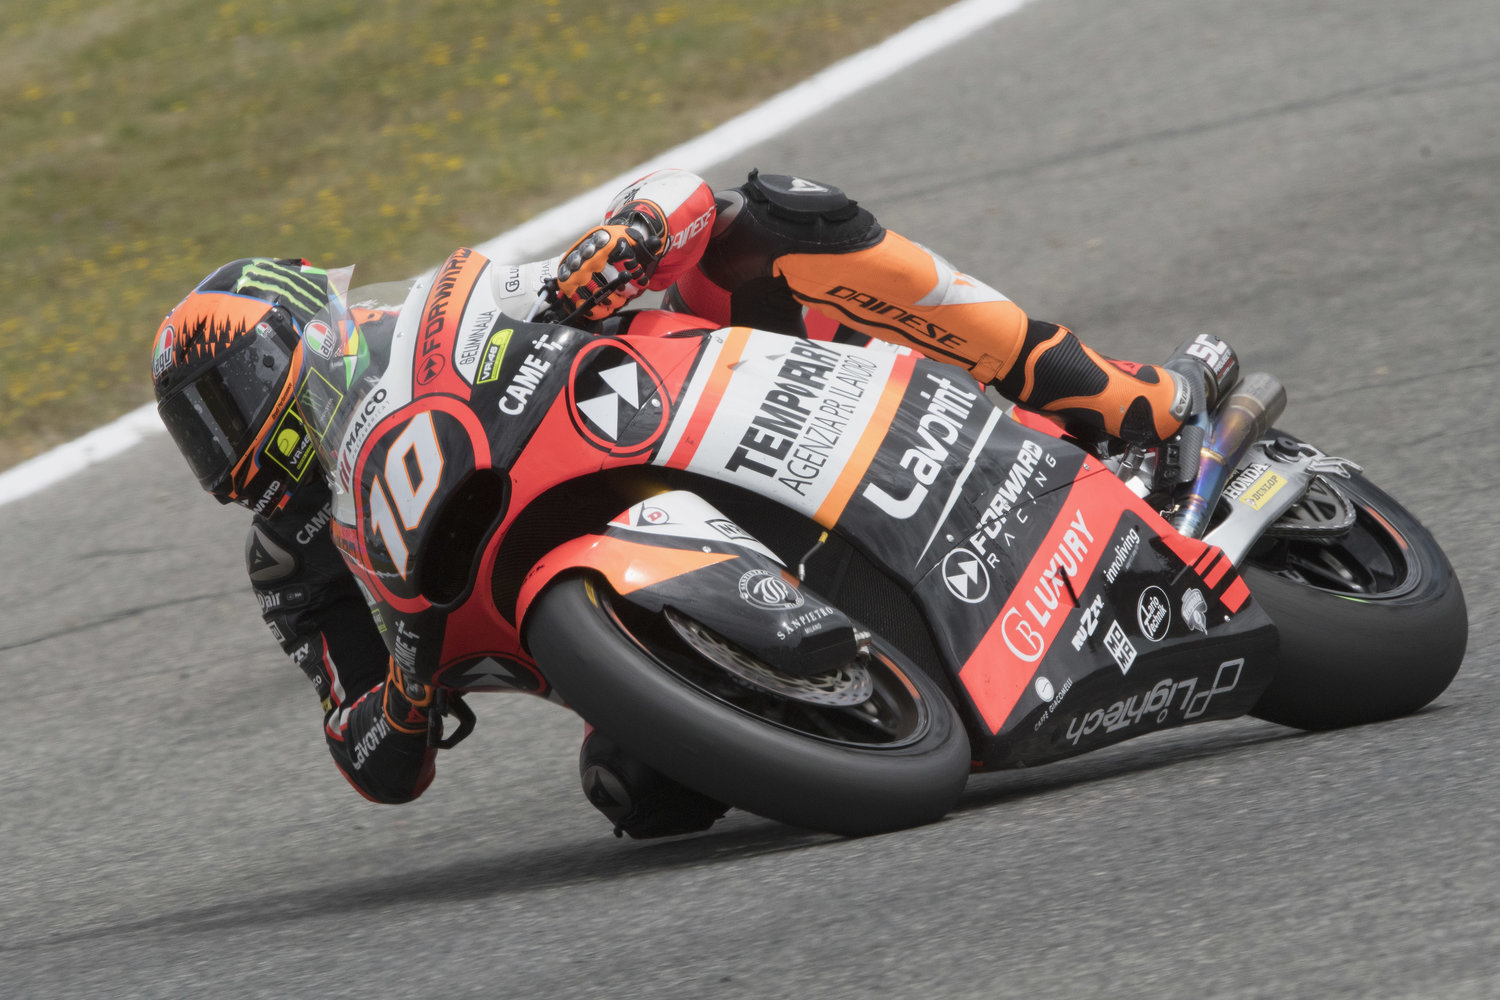 Encouraging opening day for Marini and Baldassarri in Andalusia